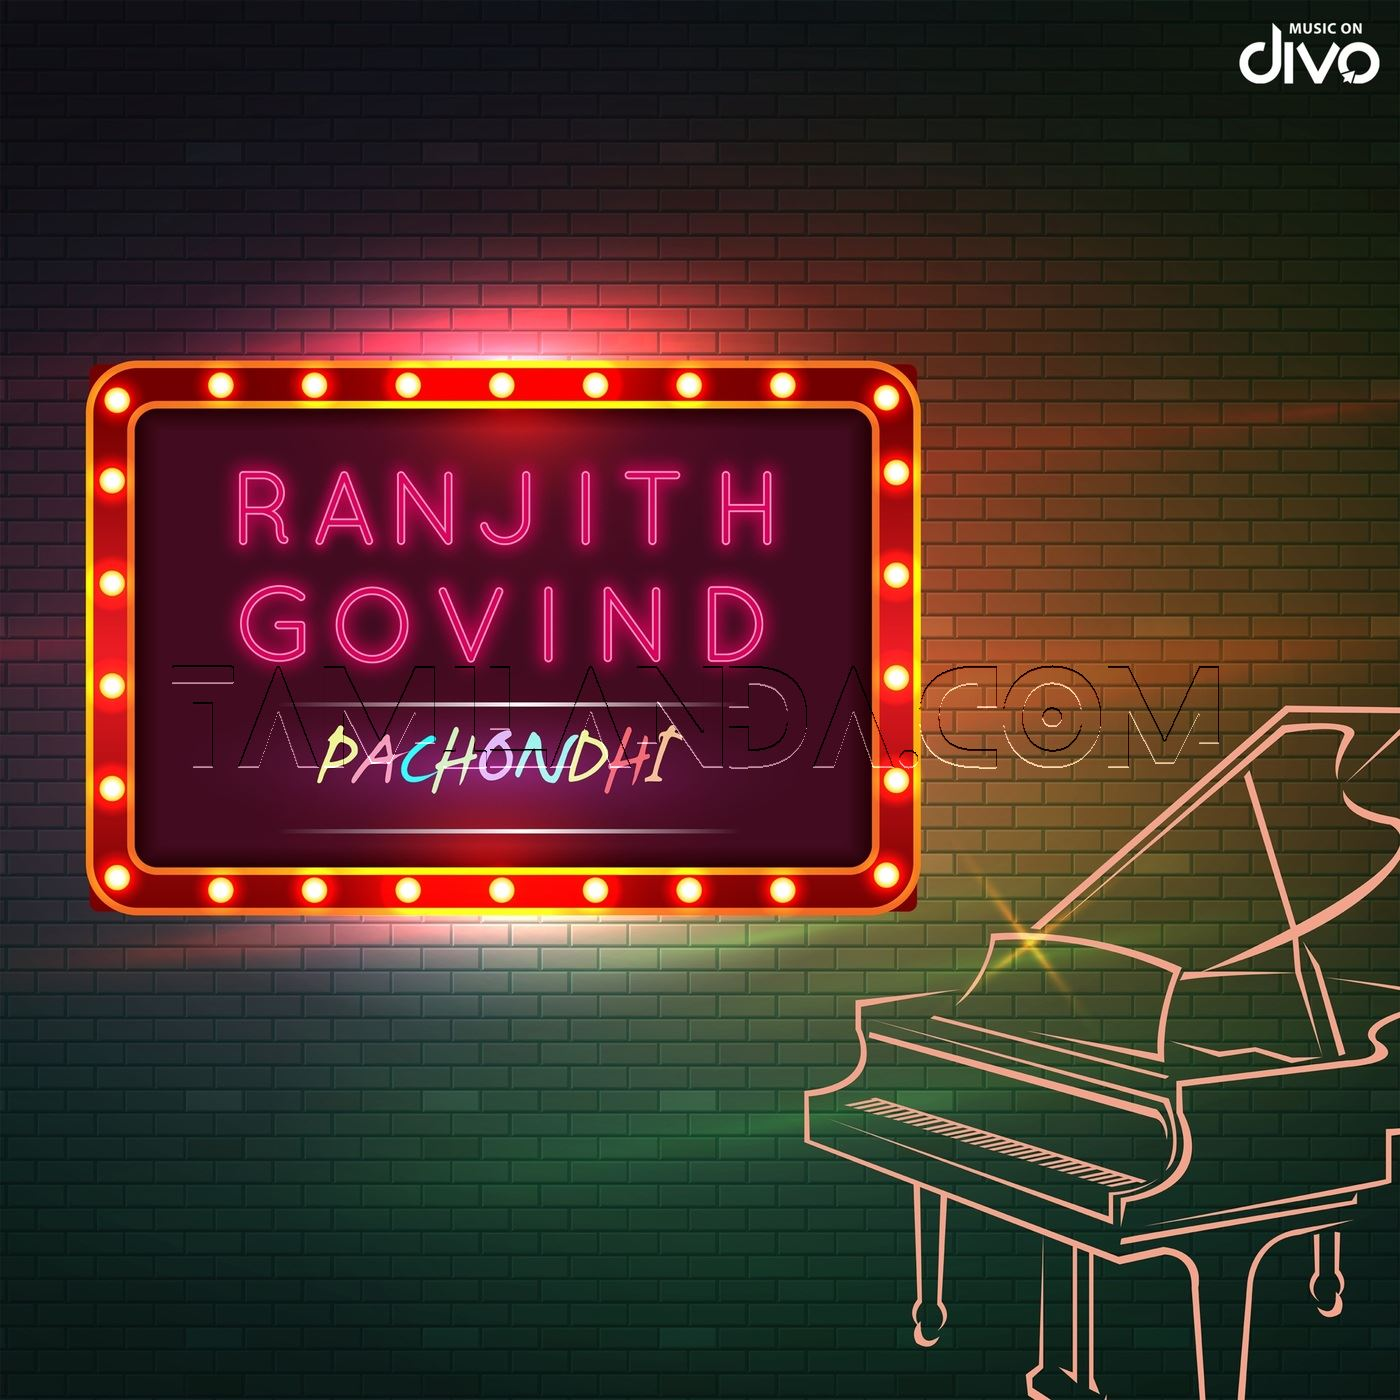 Pachondhi (She) – Single FLAC Song